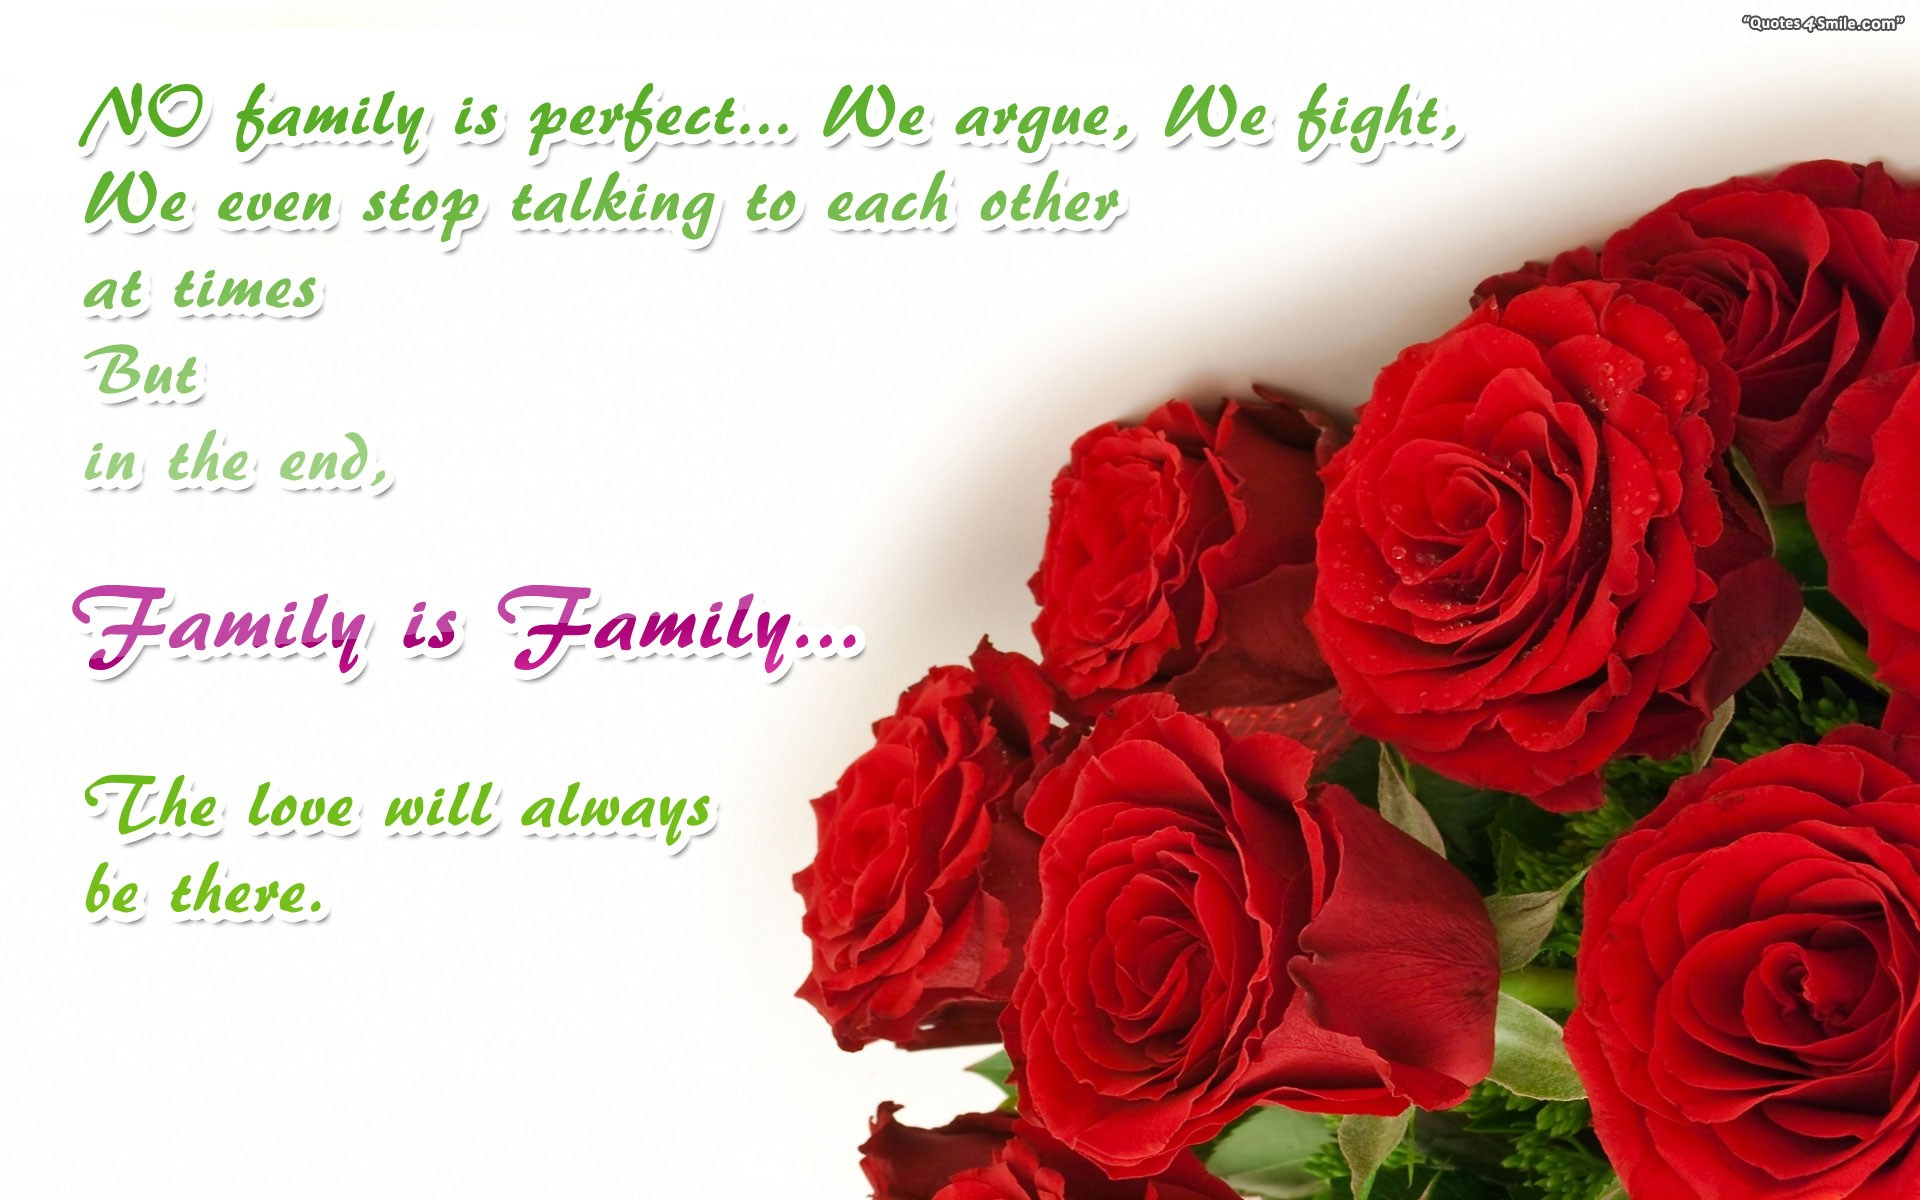 Reunion Quotes And Sayings: Family Reunion Quotes And Sayings. QuotesGram